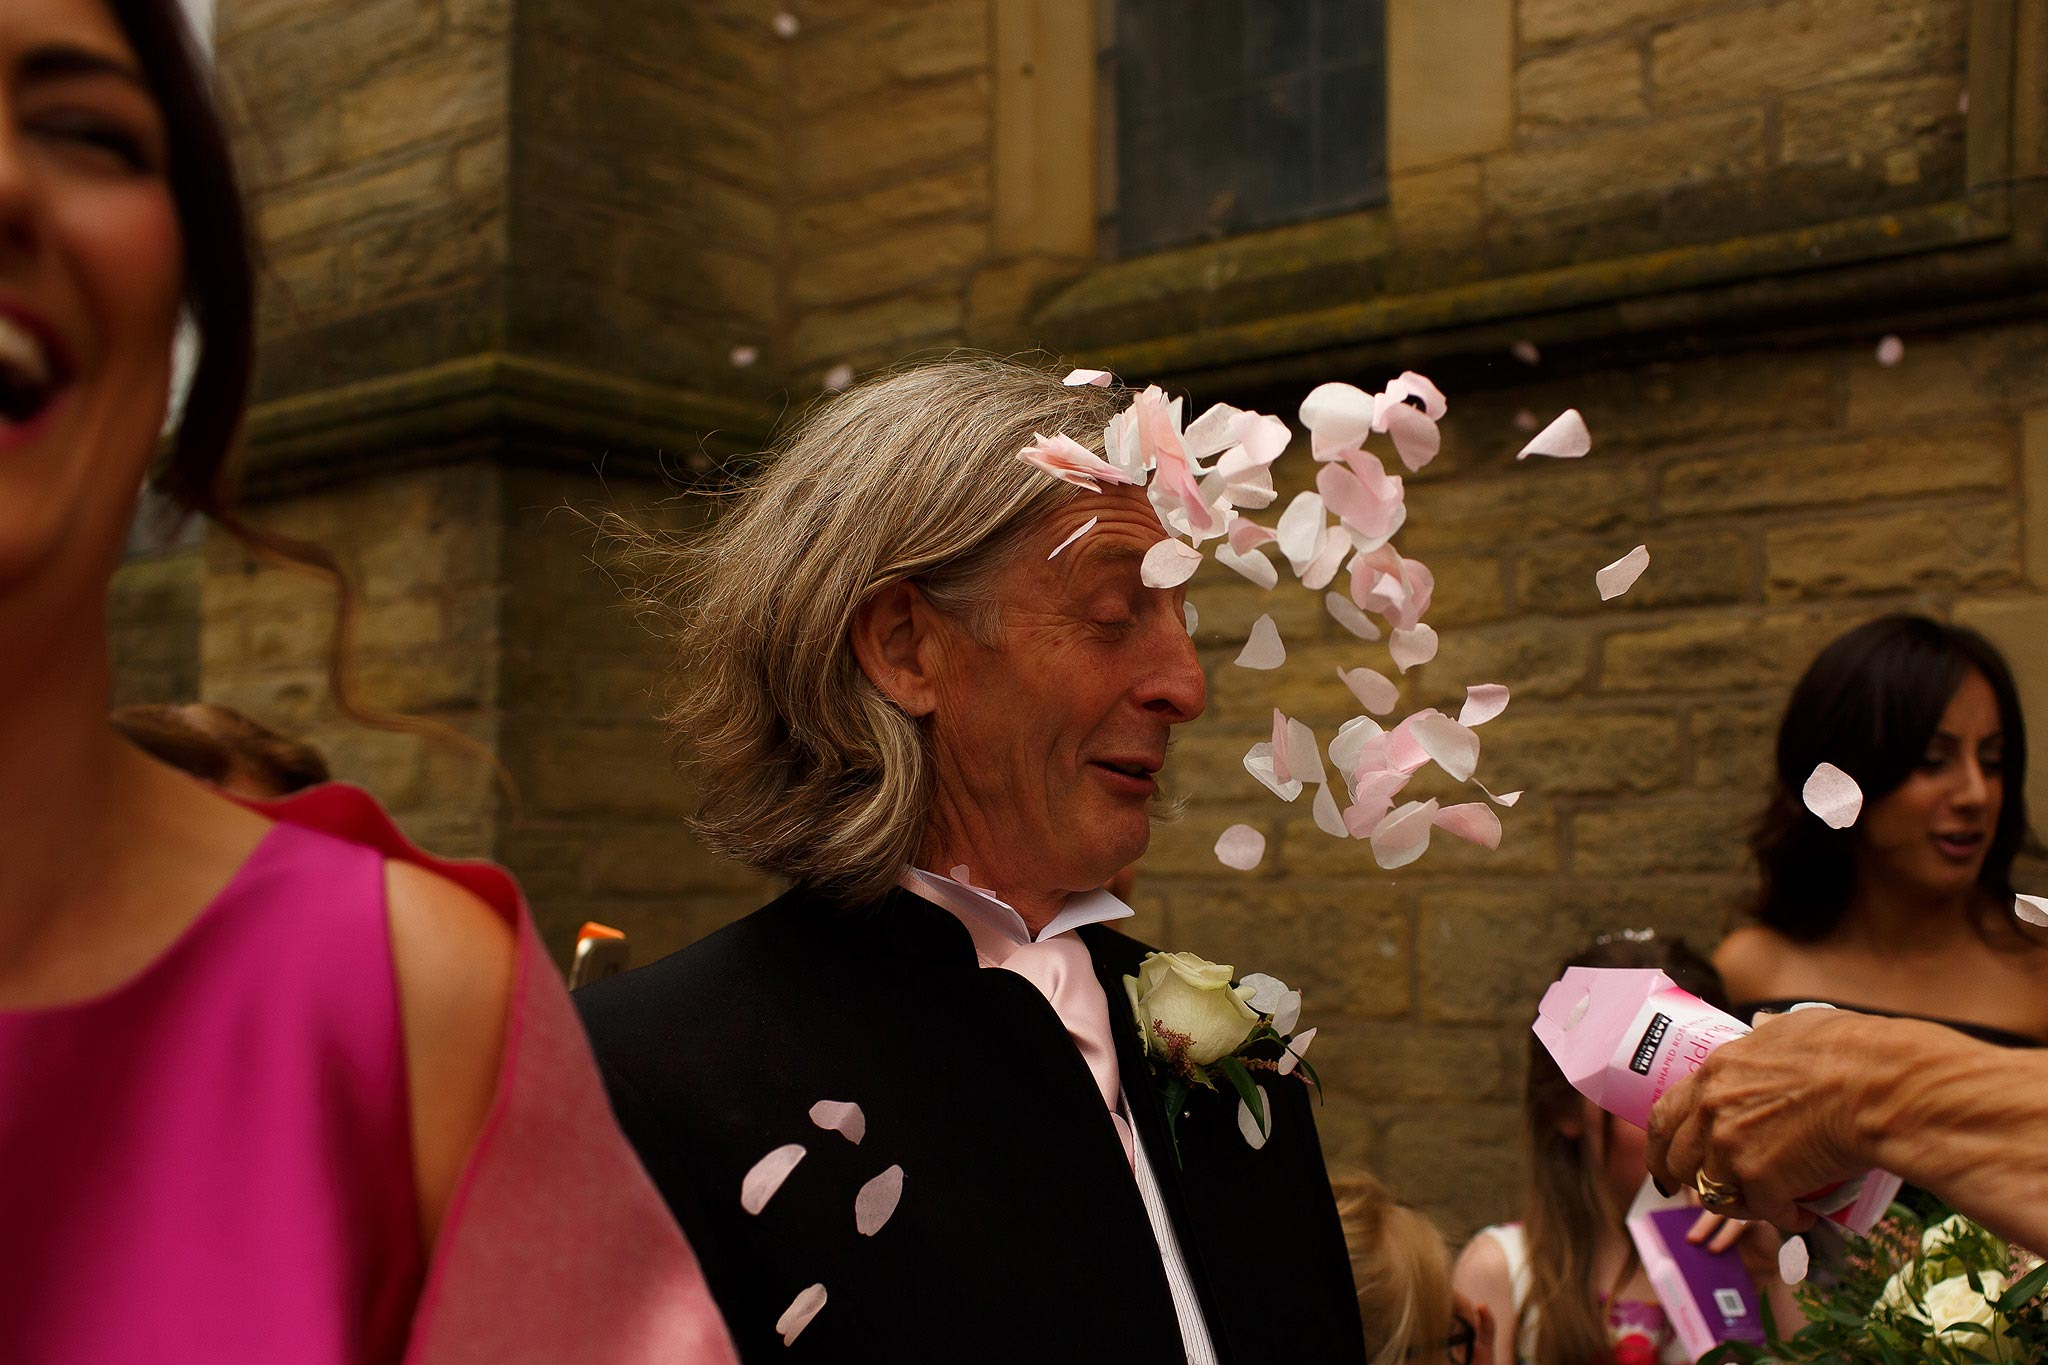 Confetti being thrown directly in grooms face